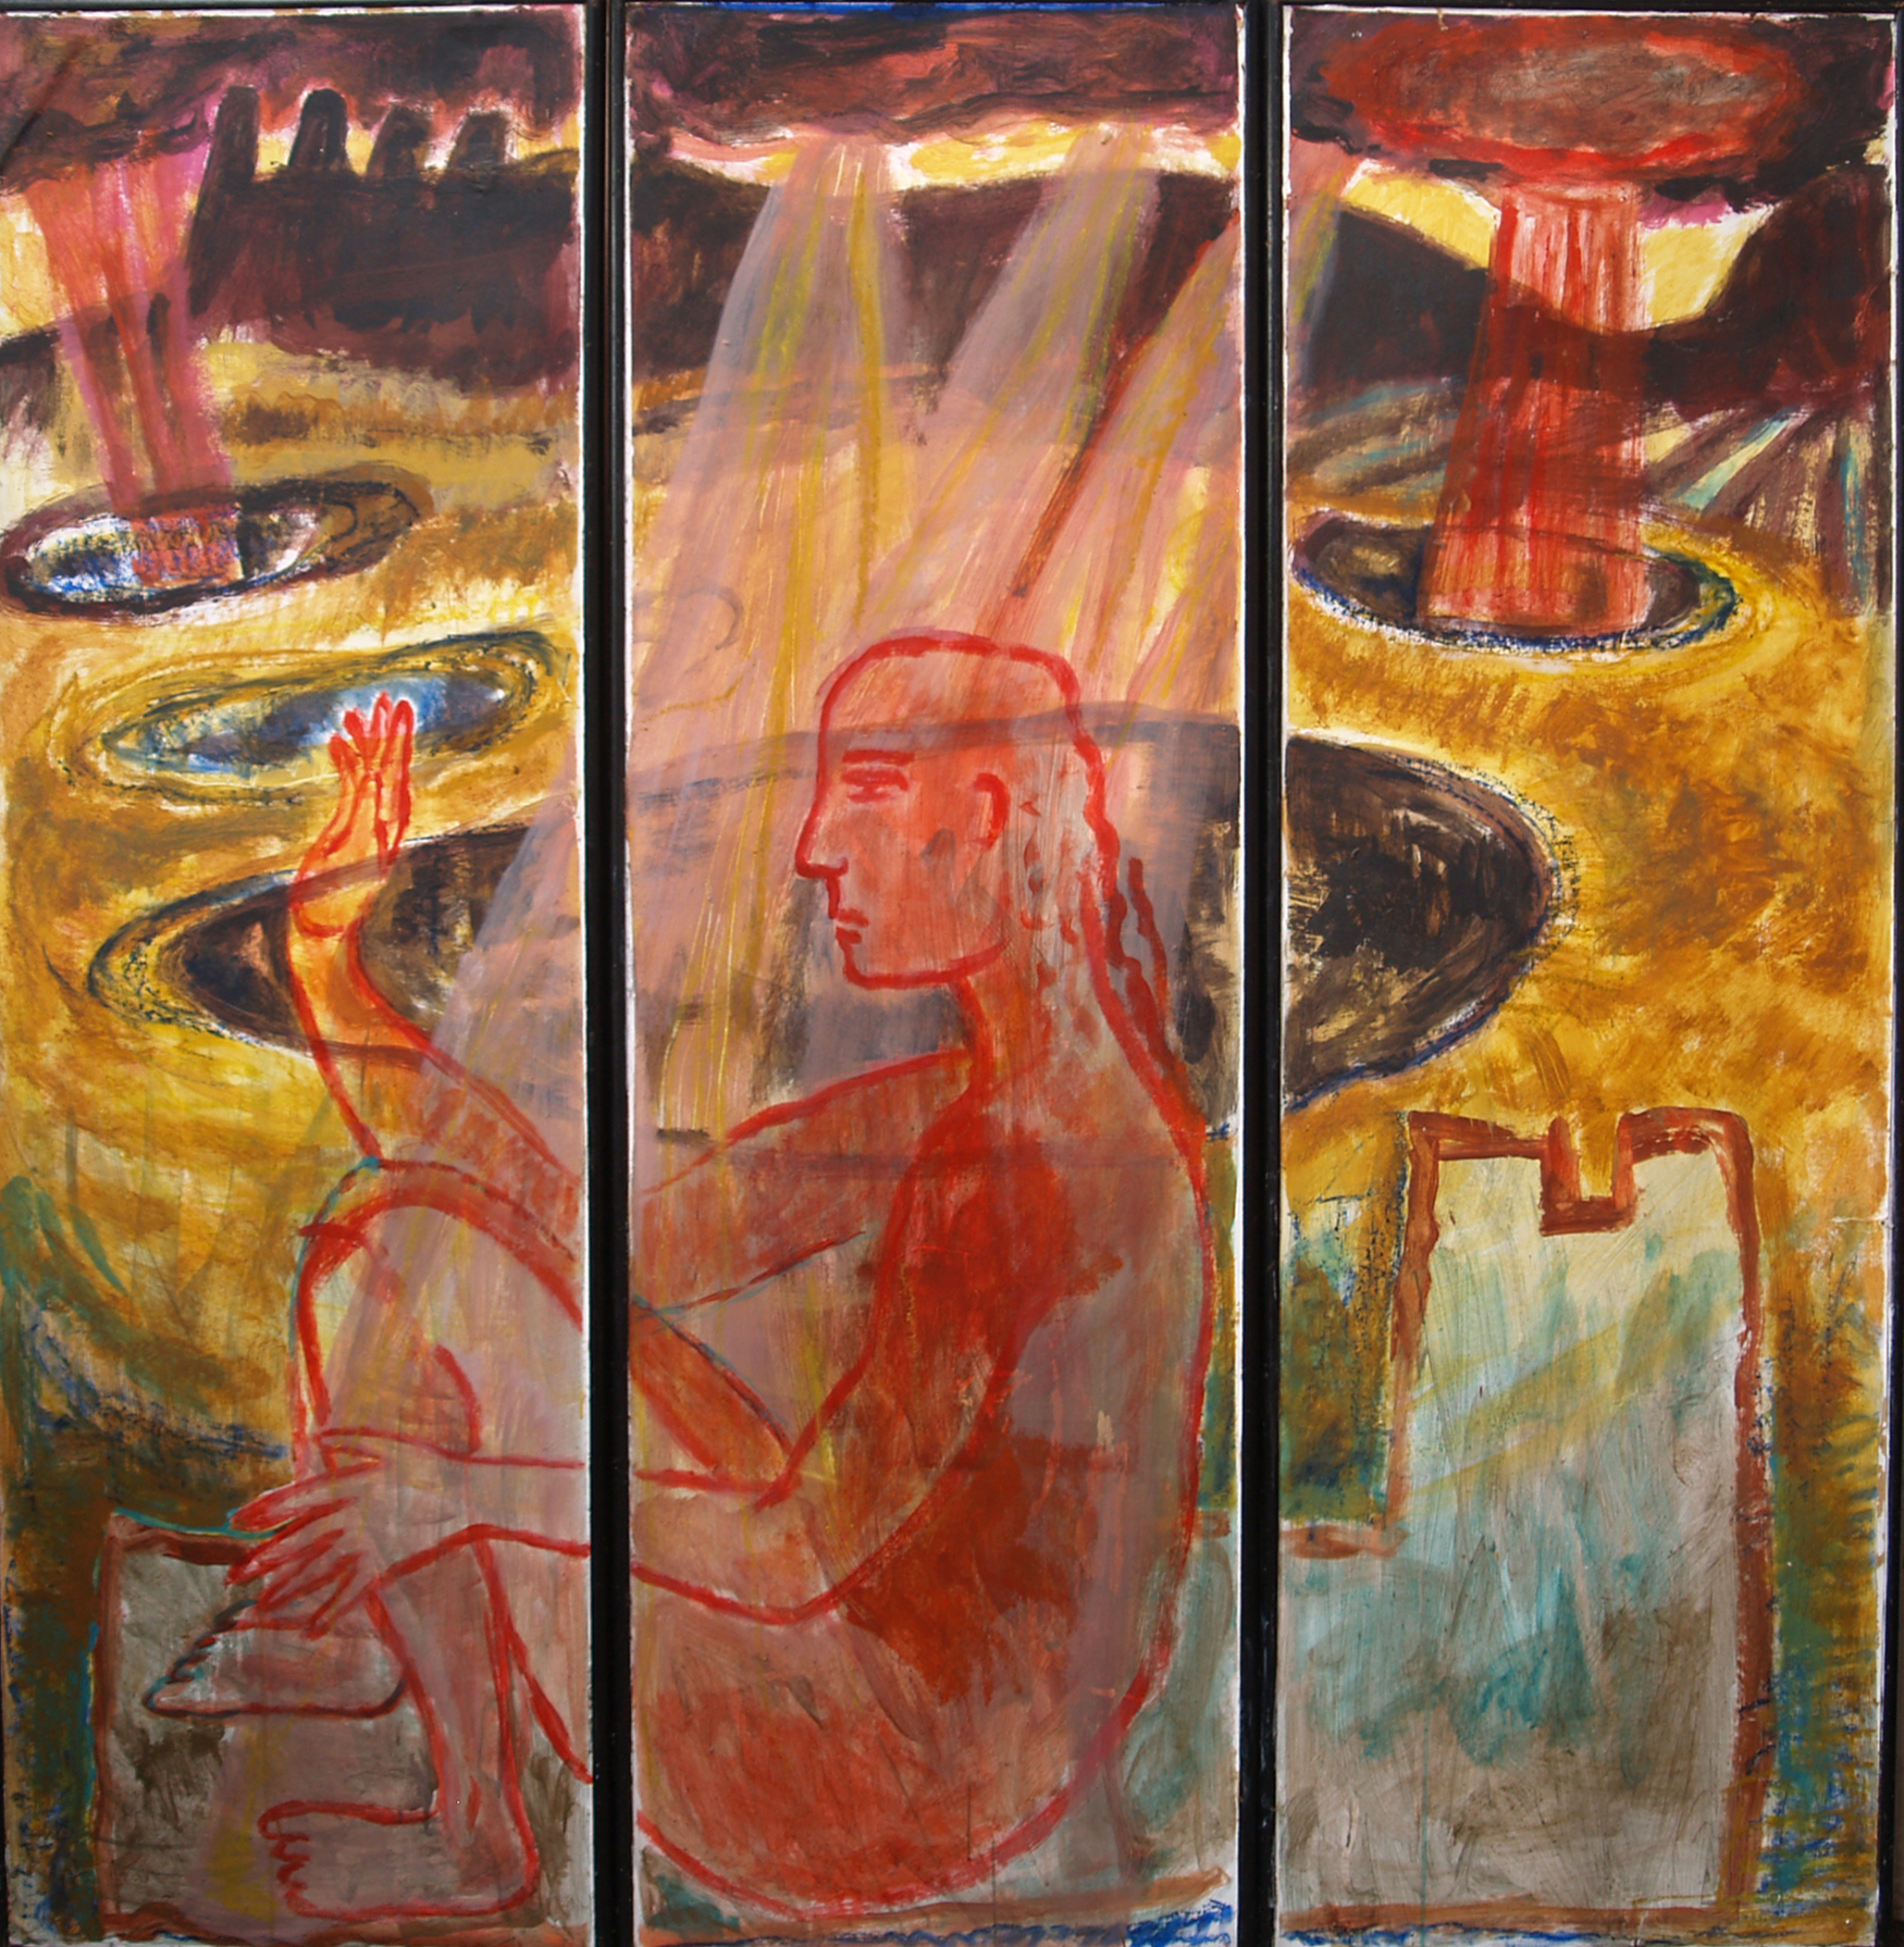 Triptych - WEATHER/Fiery Landscape - 1989 - Acrylic/mixed media on Screen - Wood & paper - 162 X 170 cm